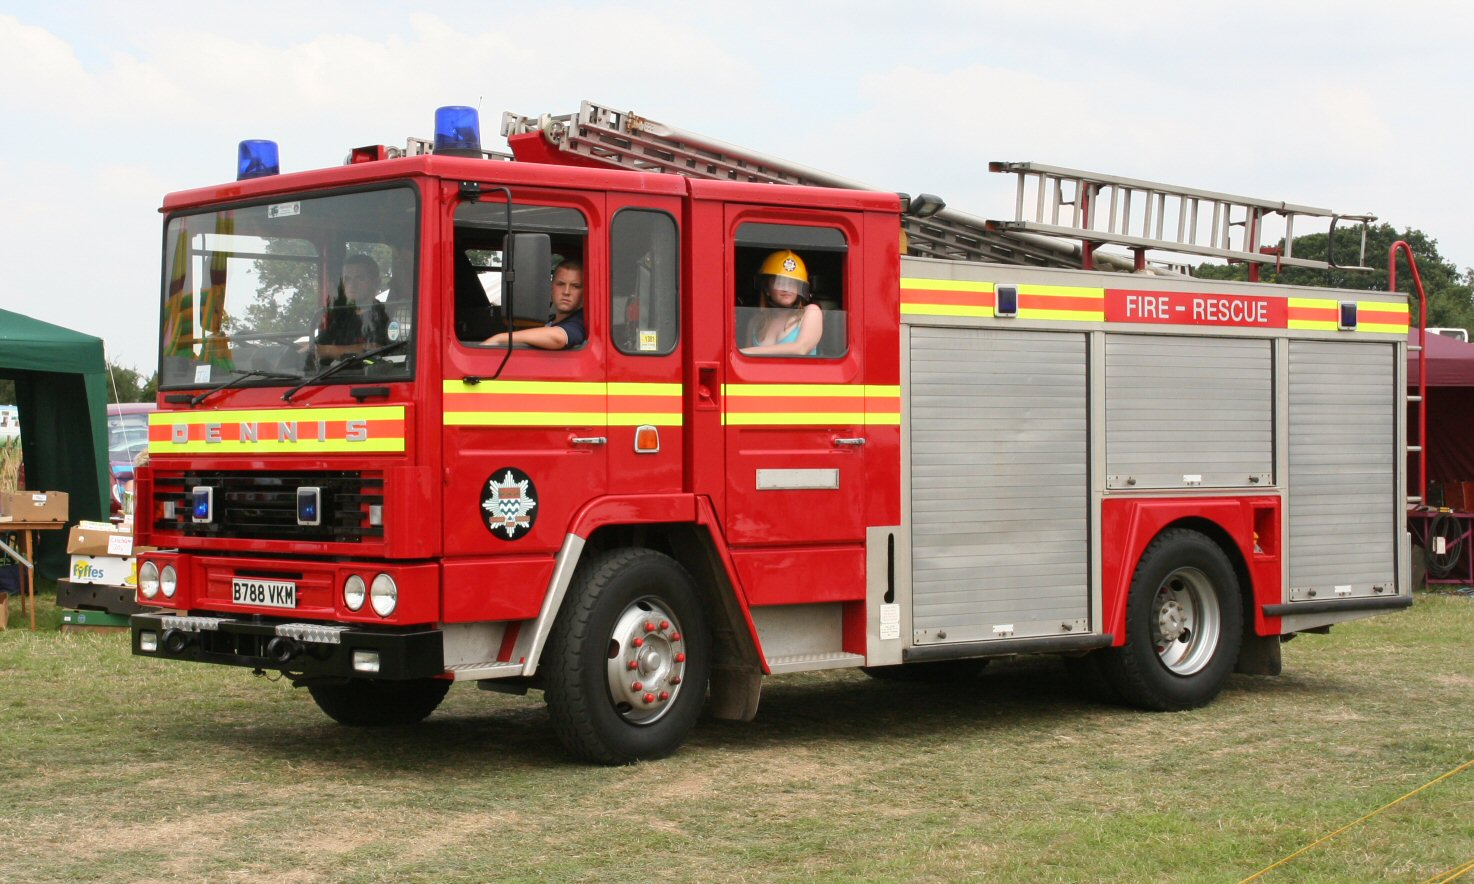 the fire engine - photo #18